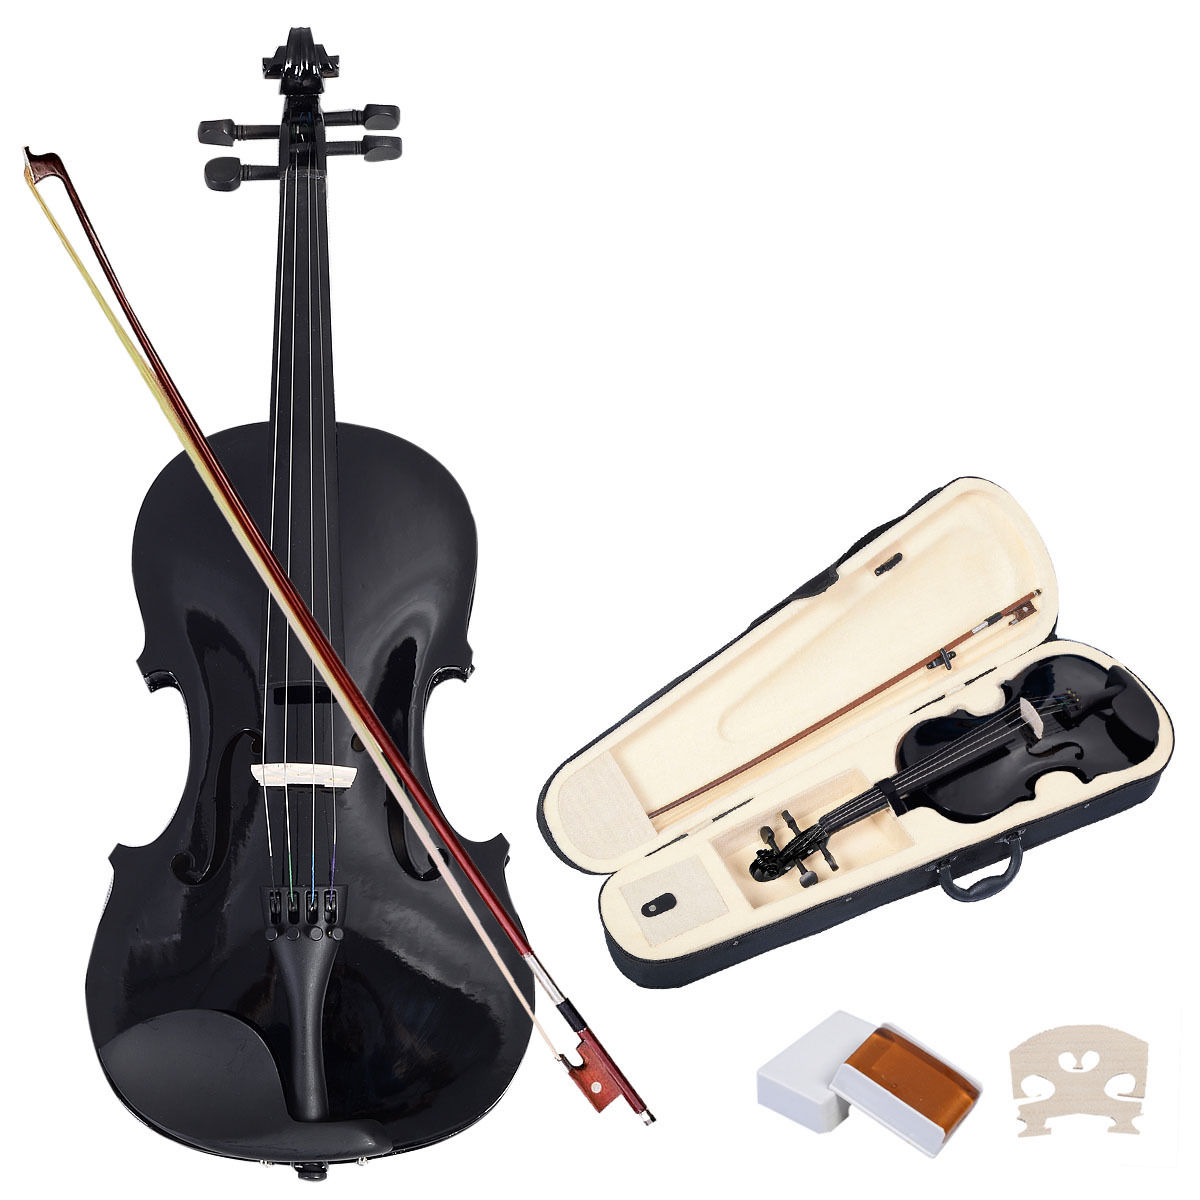 Costway 4/4 Full Size Natural Acoustic Violin Fiddle with Case Bow Black